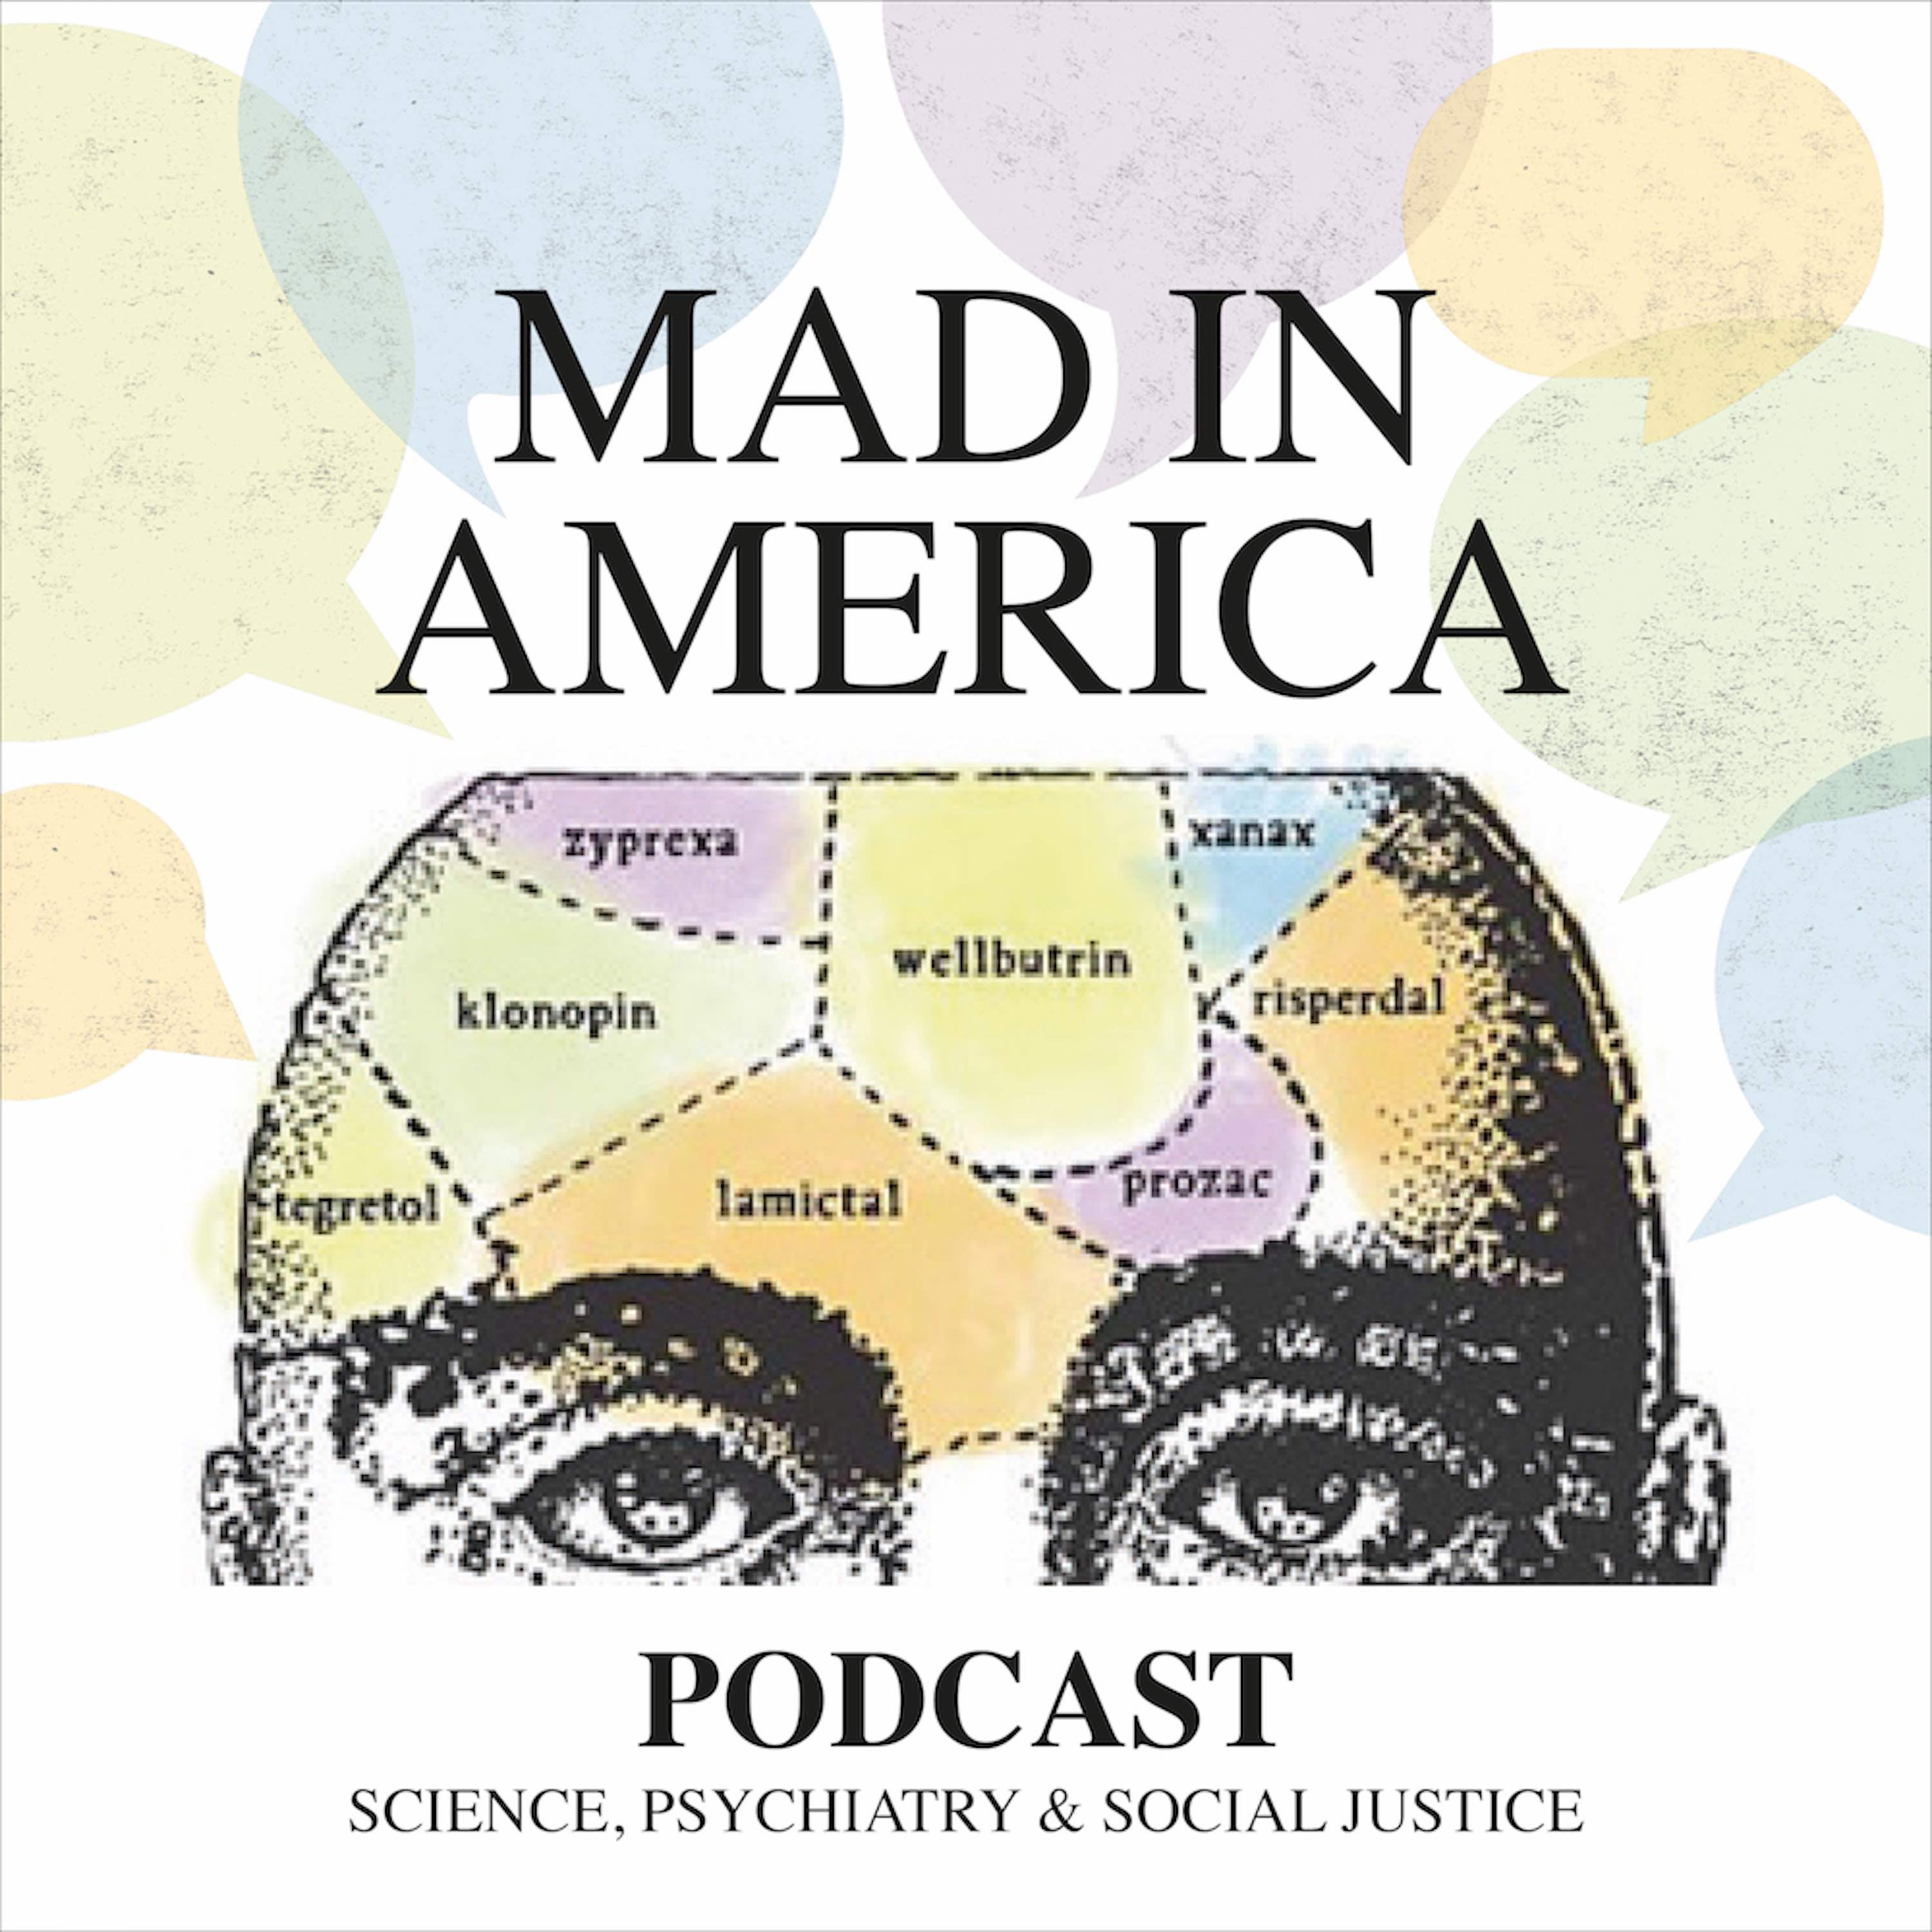 Mad in America: Rethinking Mental Health - Peter Breggin - The Conscience of Psychiatry (Part 1)